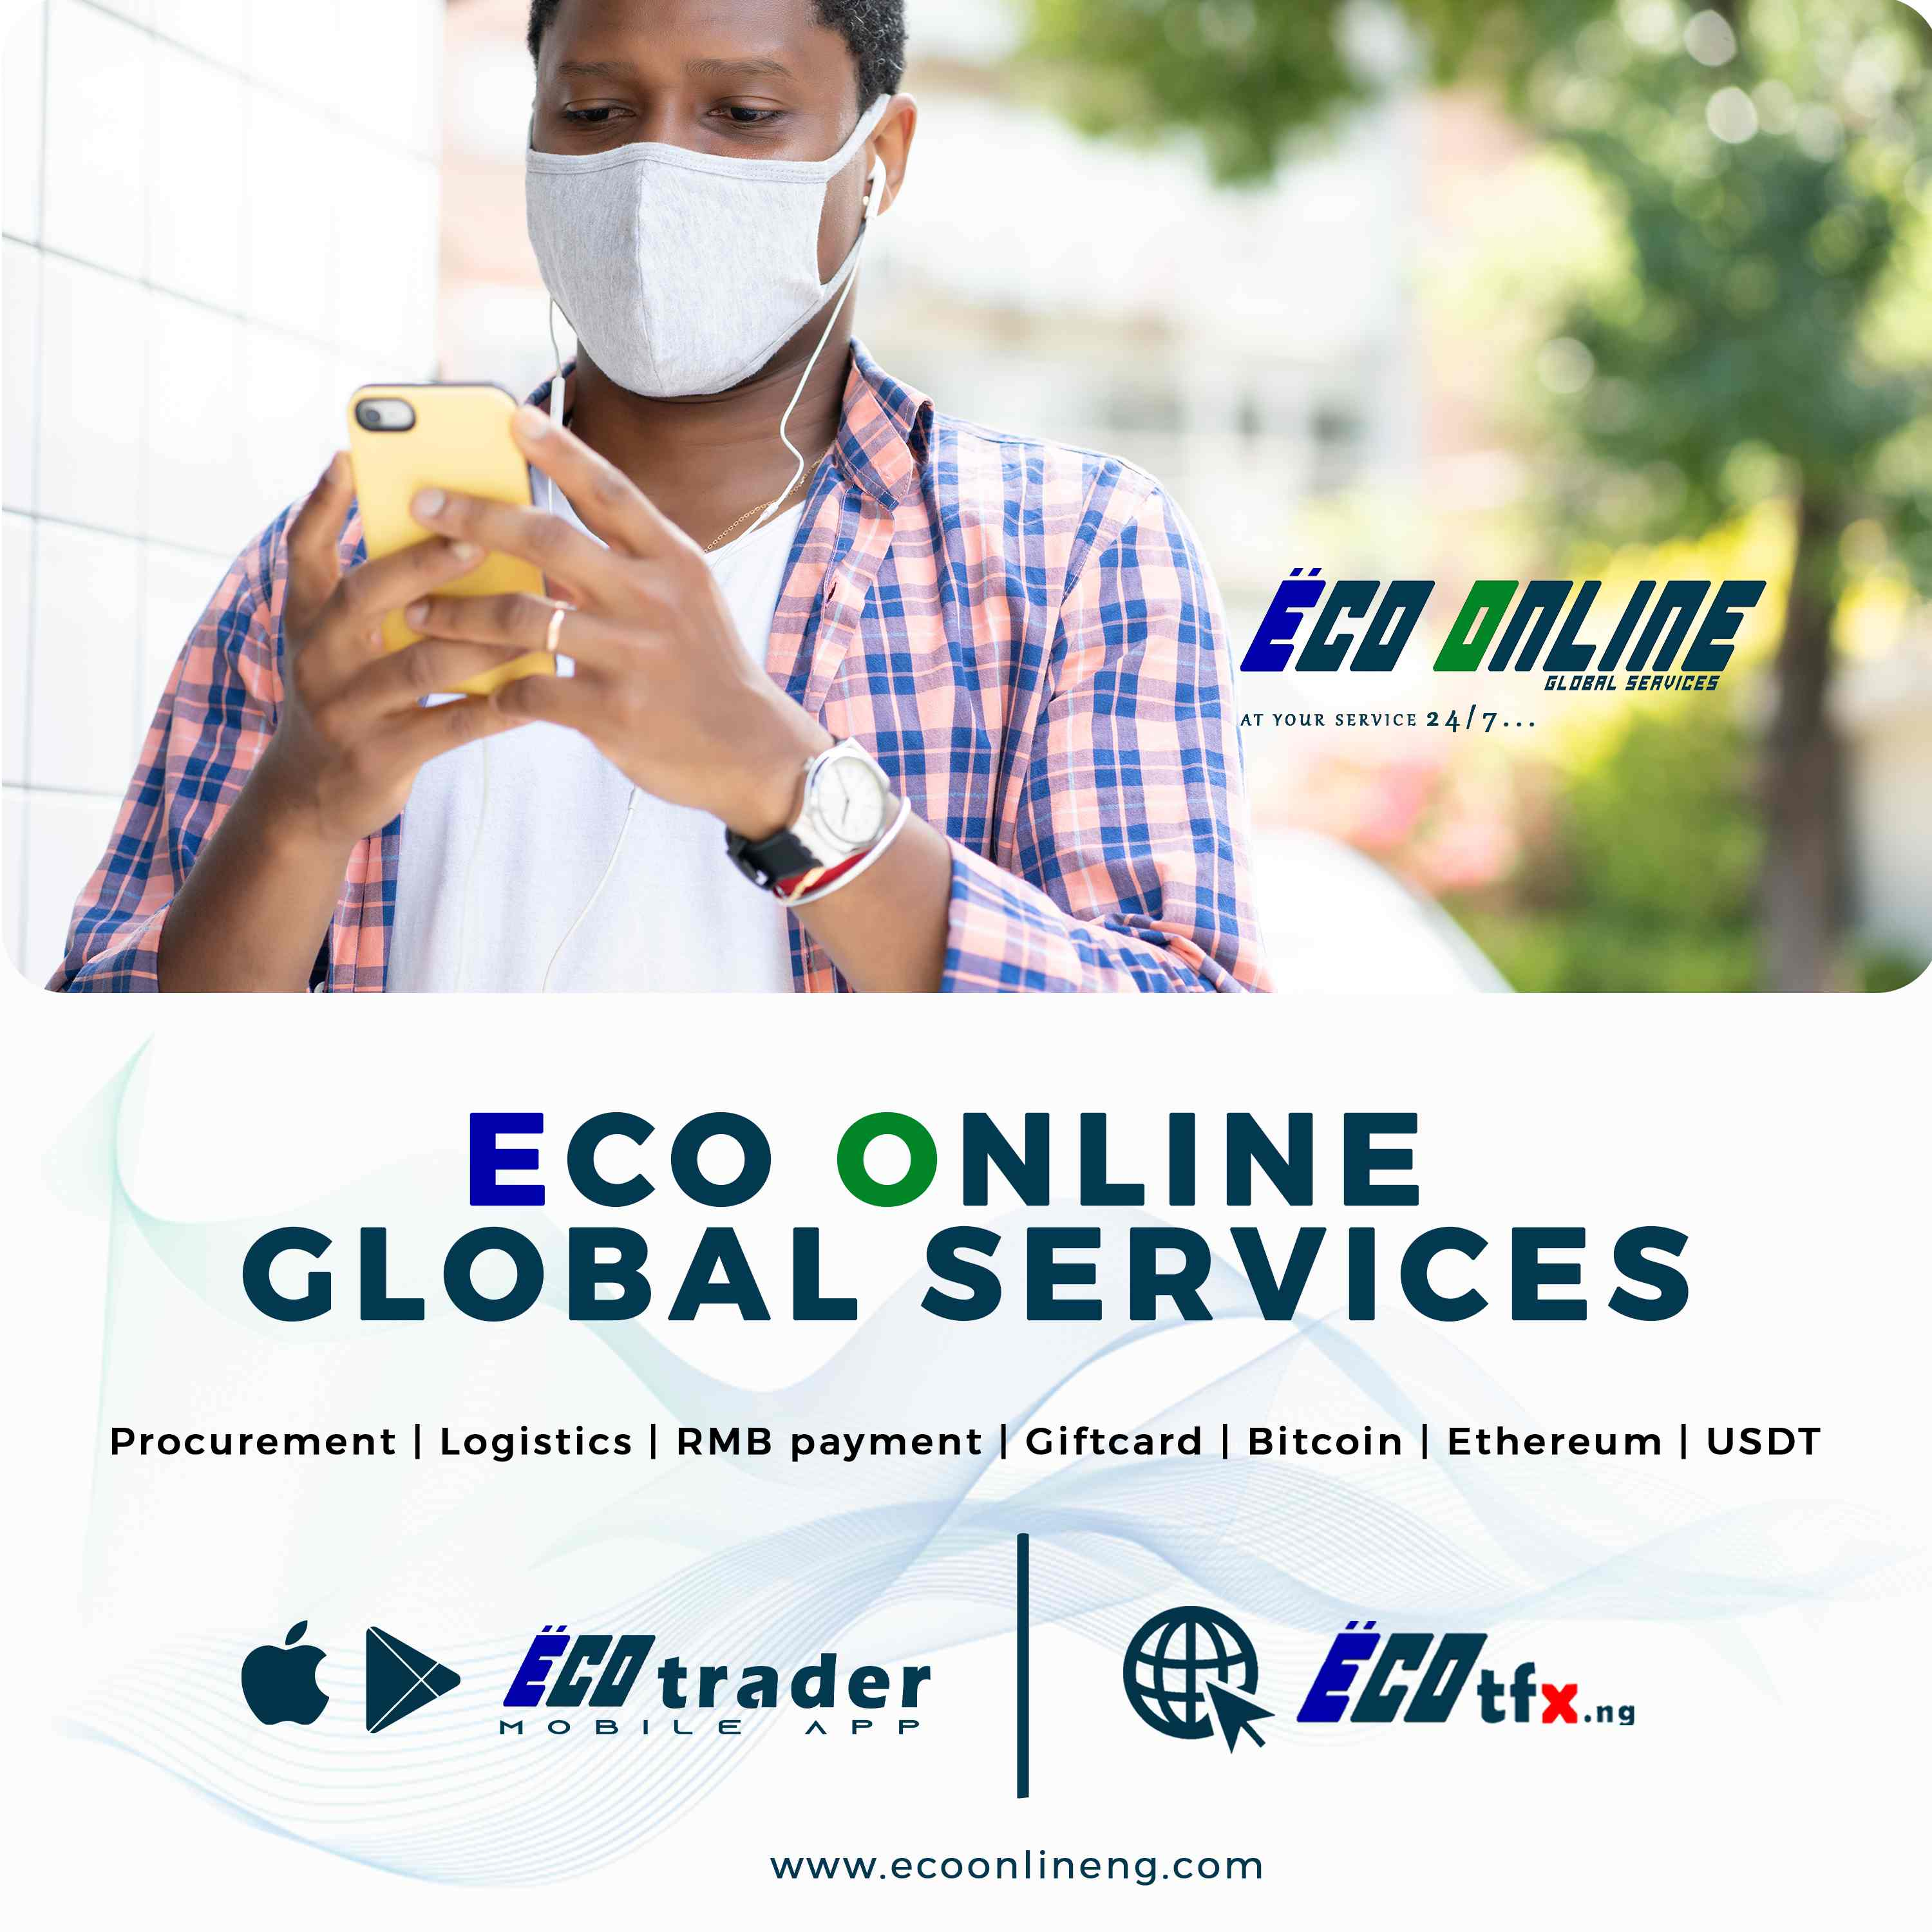 """ECO ONLINE GLOBAL SERVICES LAUNCHES TRADING APP """"ECO TRADER"""""""